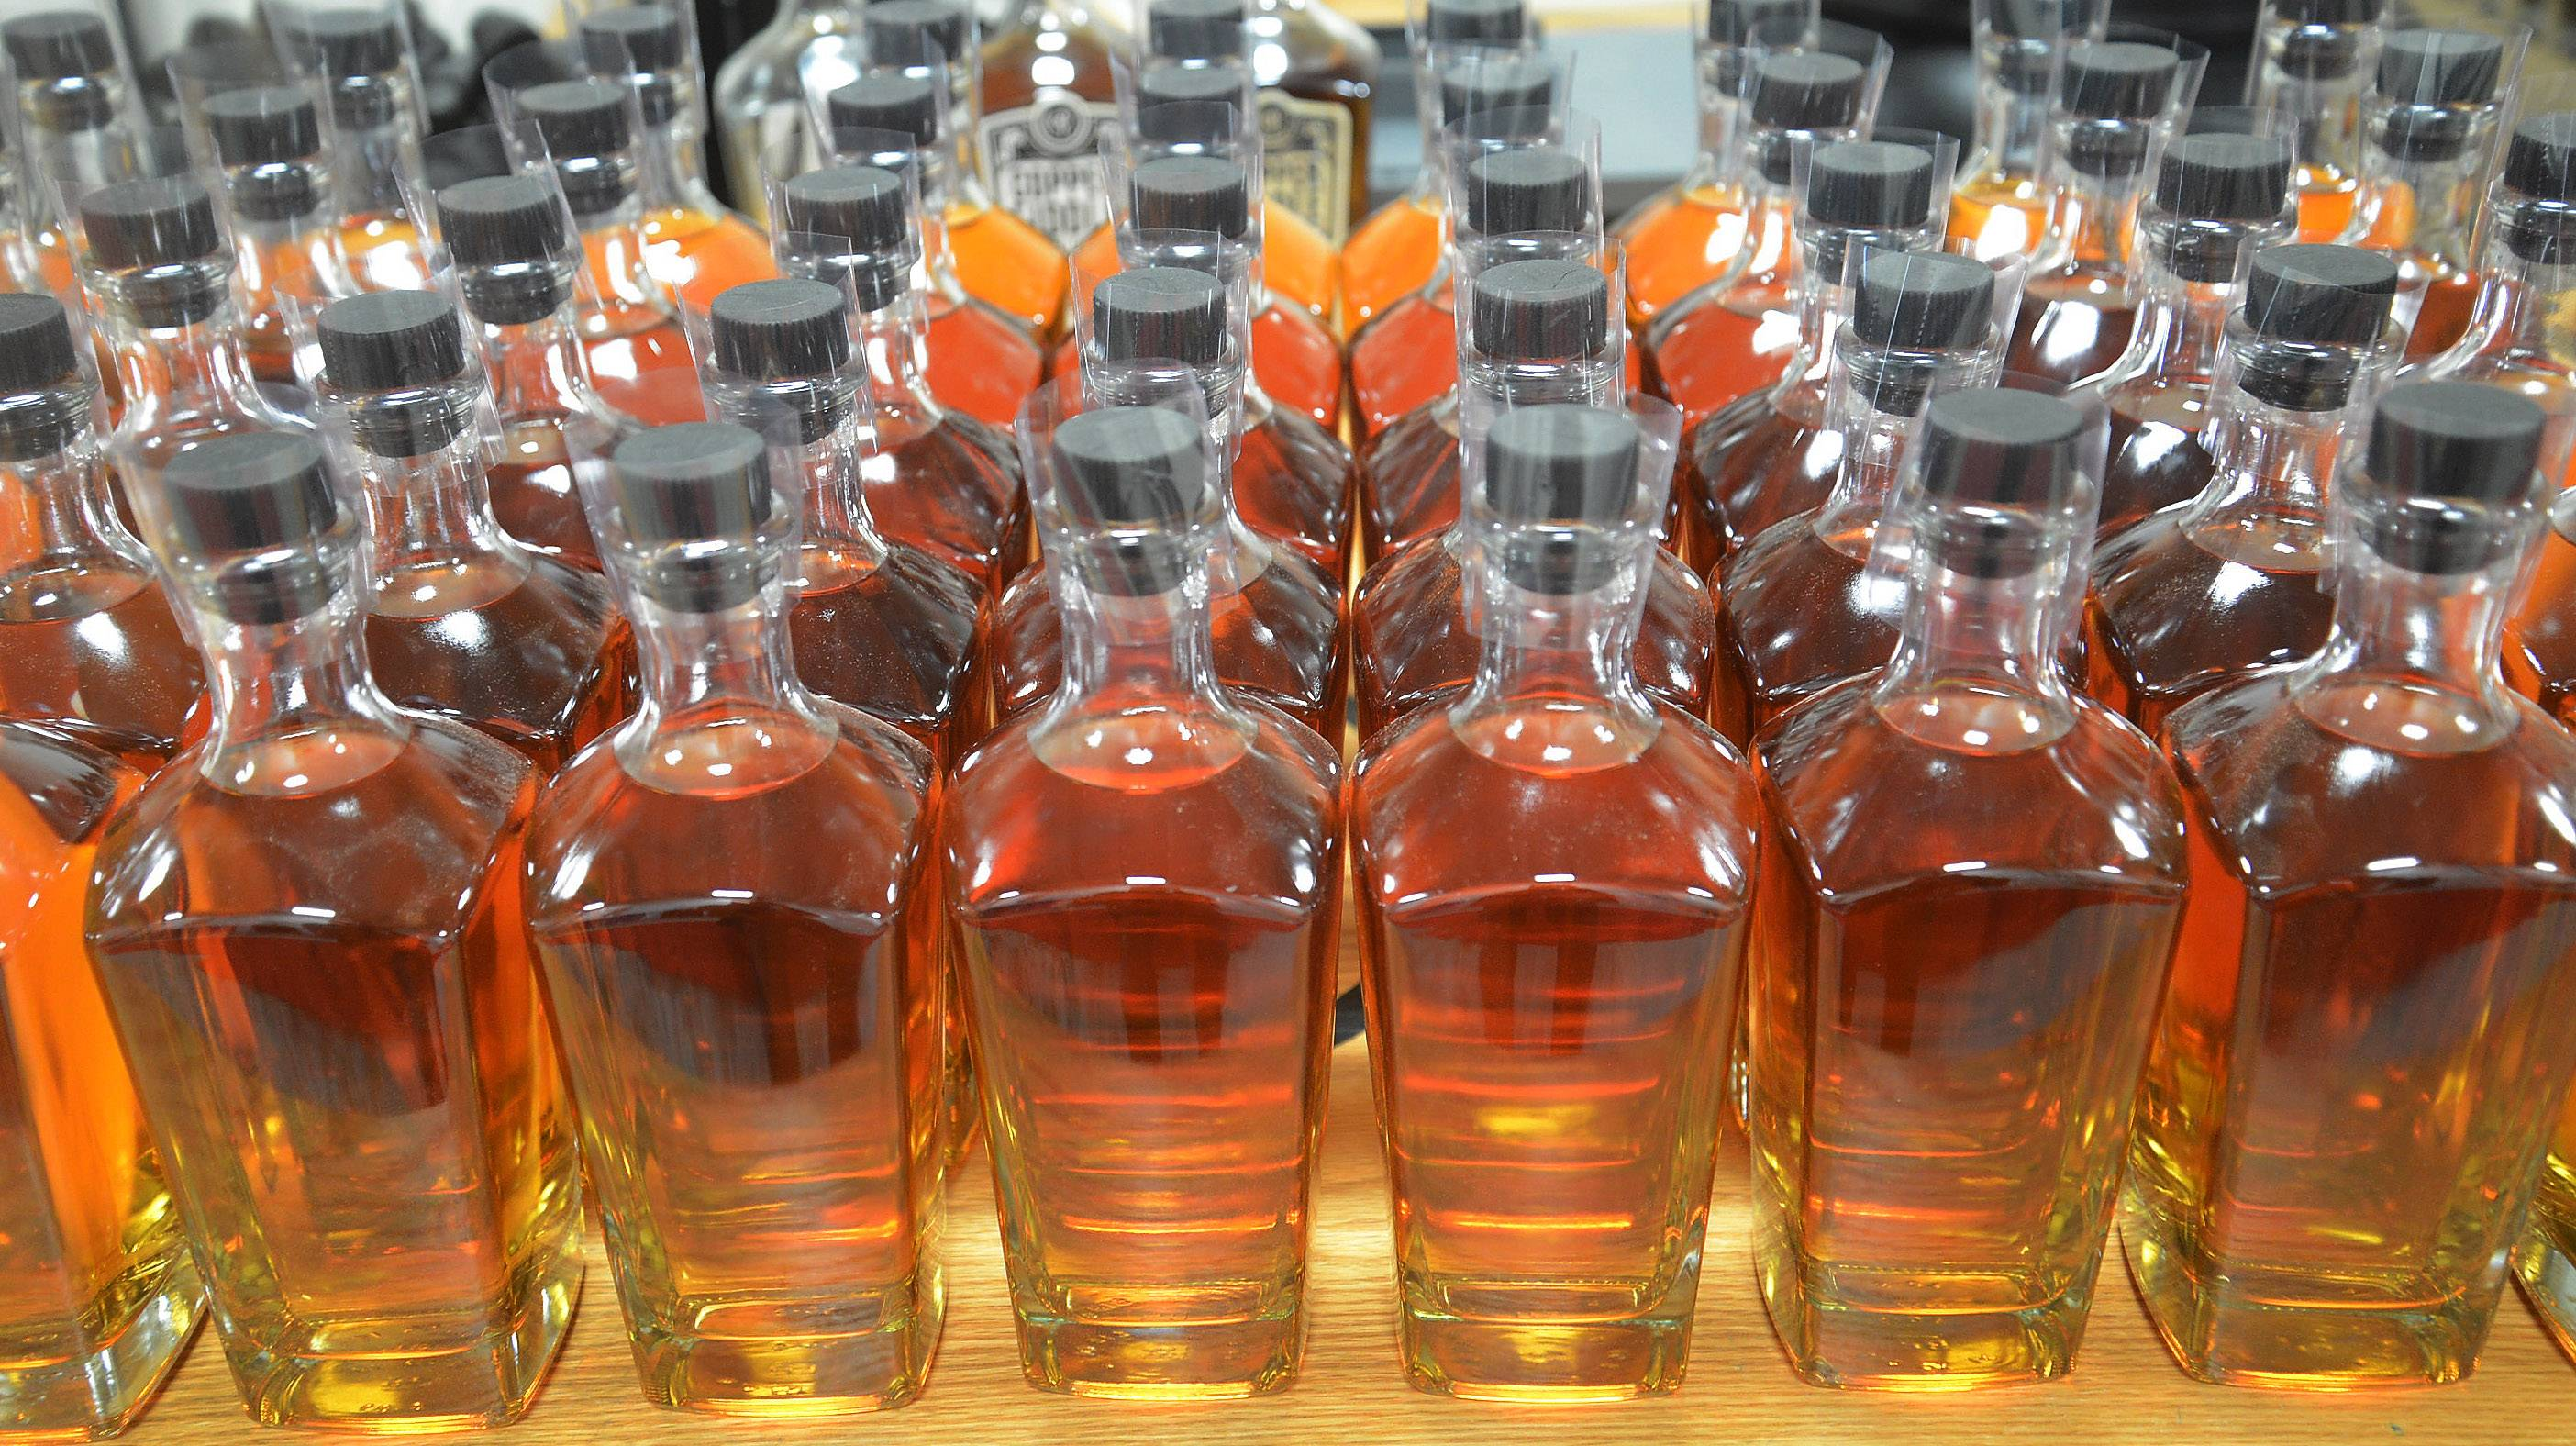 Fred Robinson and Jose Hernandez of Copper Fiddle Distillery in Lake Zurich produce small-batch bourbon and gin in their artisan business. This shrink-wrapped bottle of bourbon is ready to be labeled.